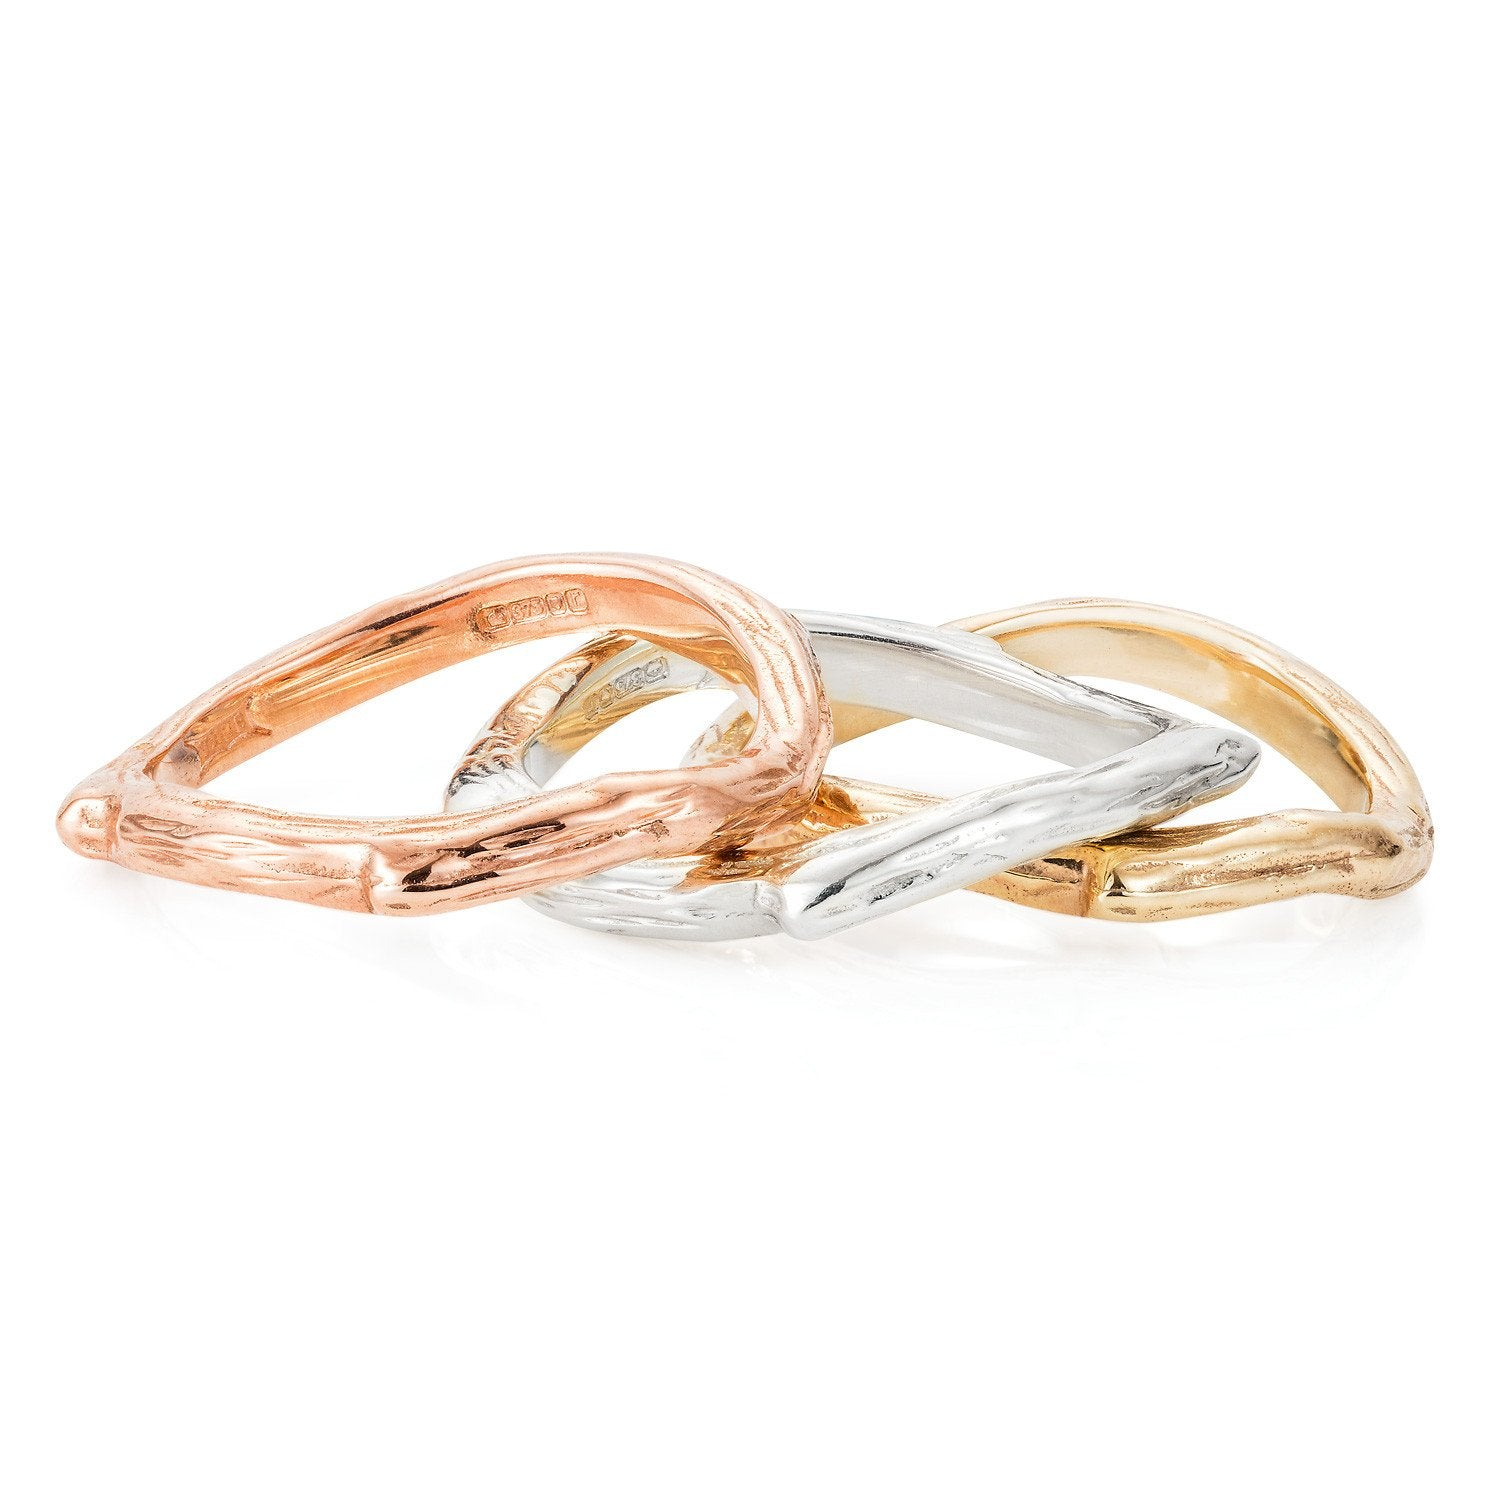 9ct Gold Twig Ring by Yasmin Everley